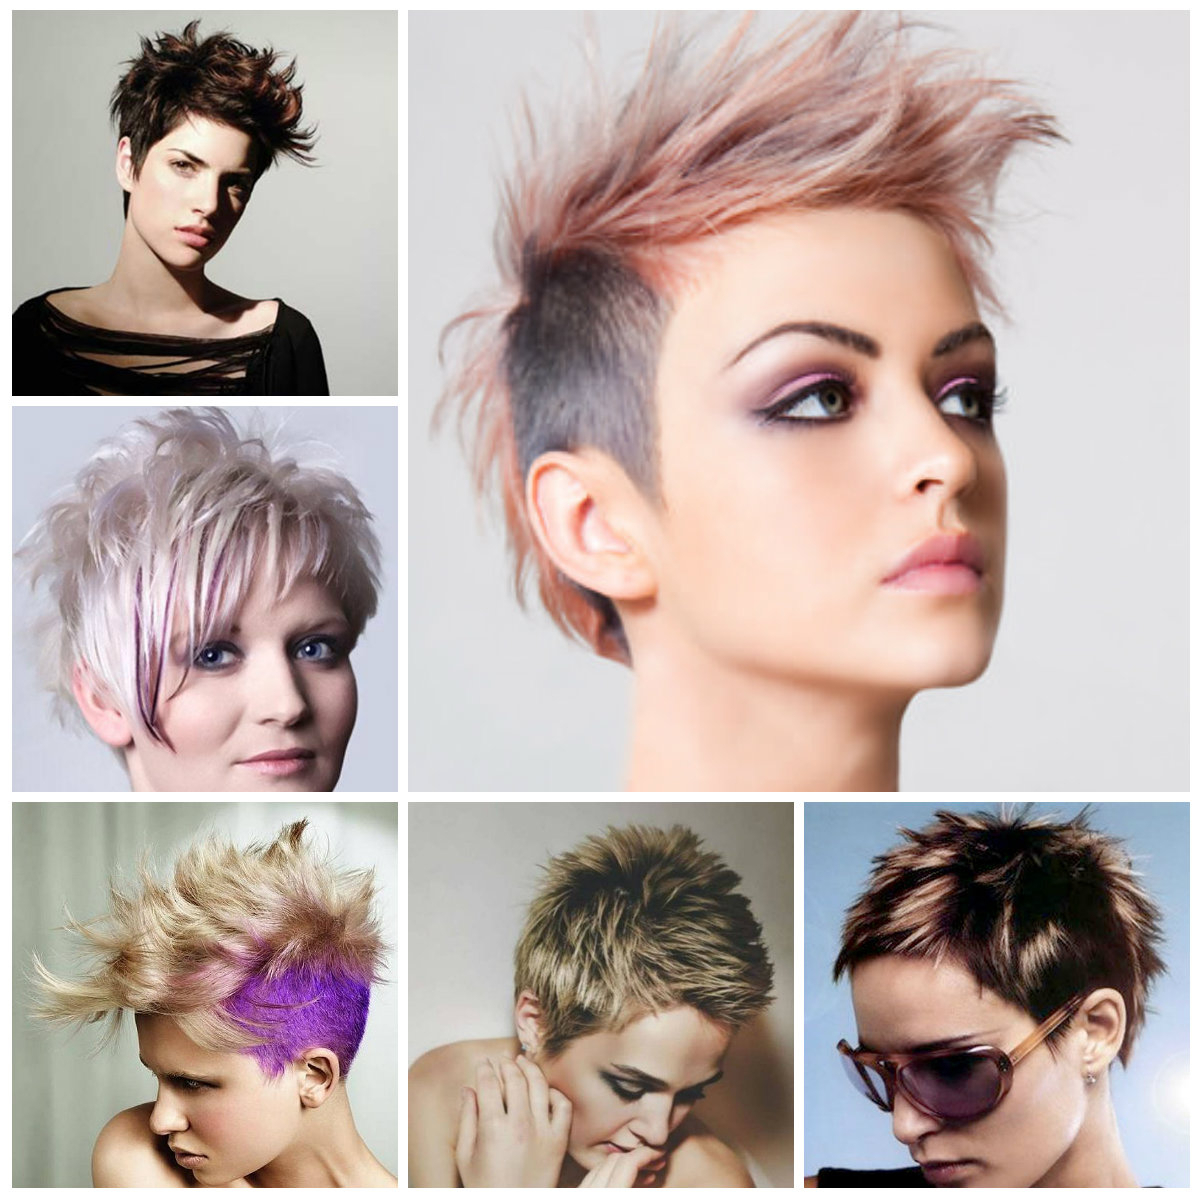 2019 Trendy Short Spiky Hairstyles For Women | Hairstyles For Women With Regard To Two Tone Spiky Short Haircuts (View 8 of 20)